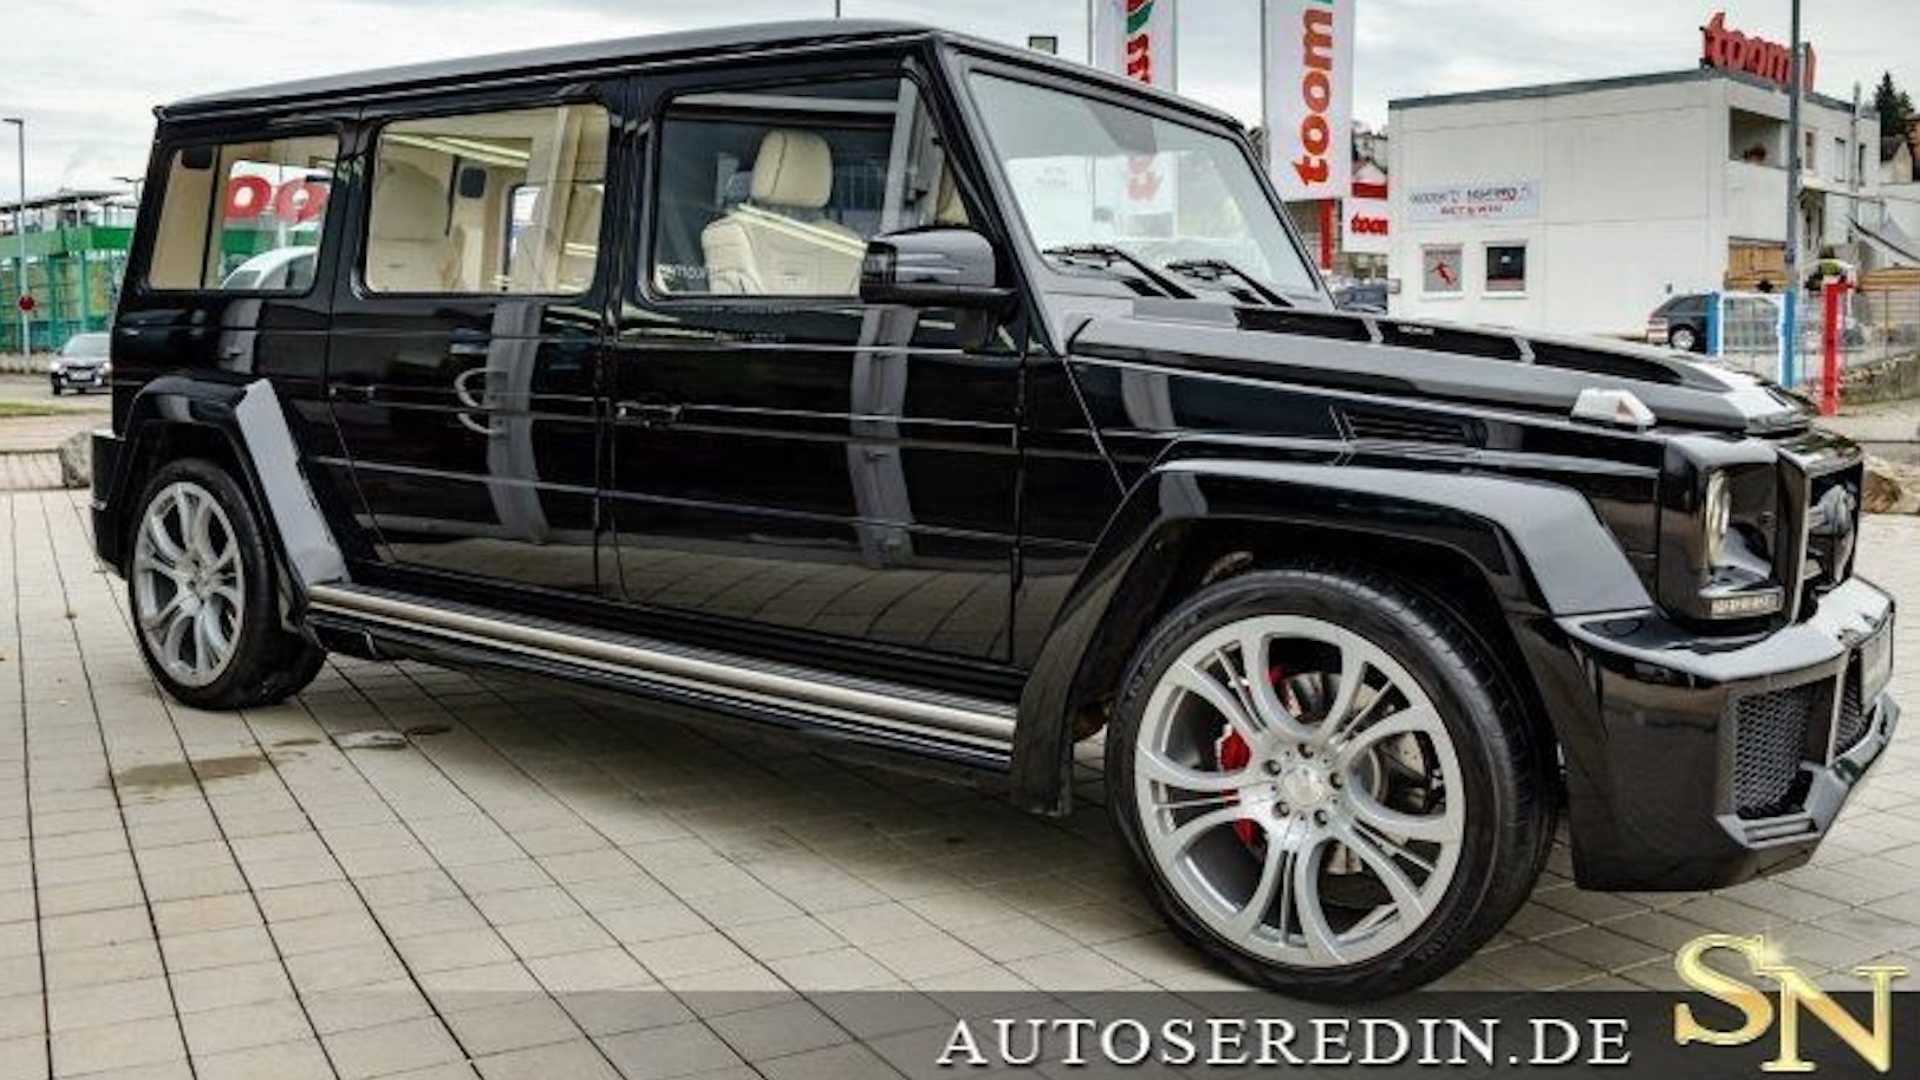 Mercedes-AMG G63 Off-Road Limo Sells For $551,000